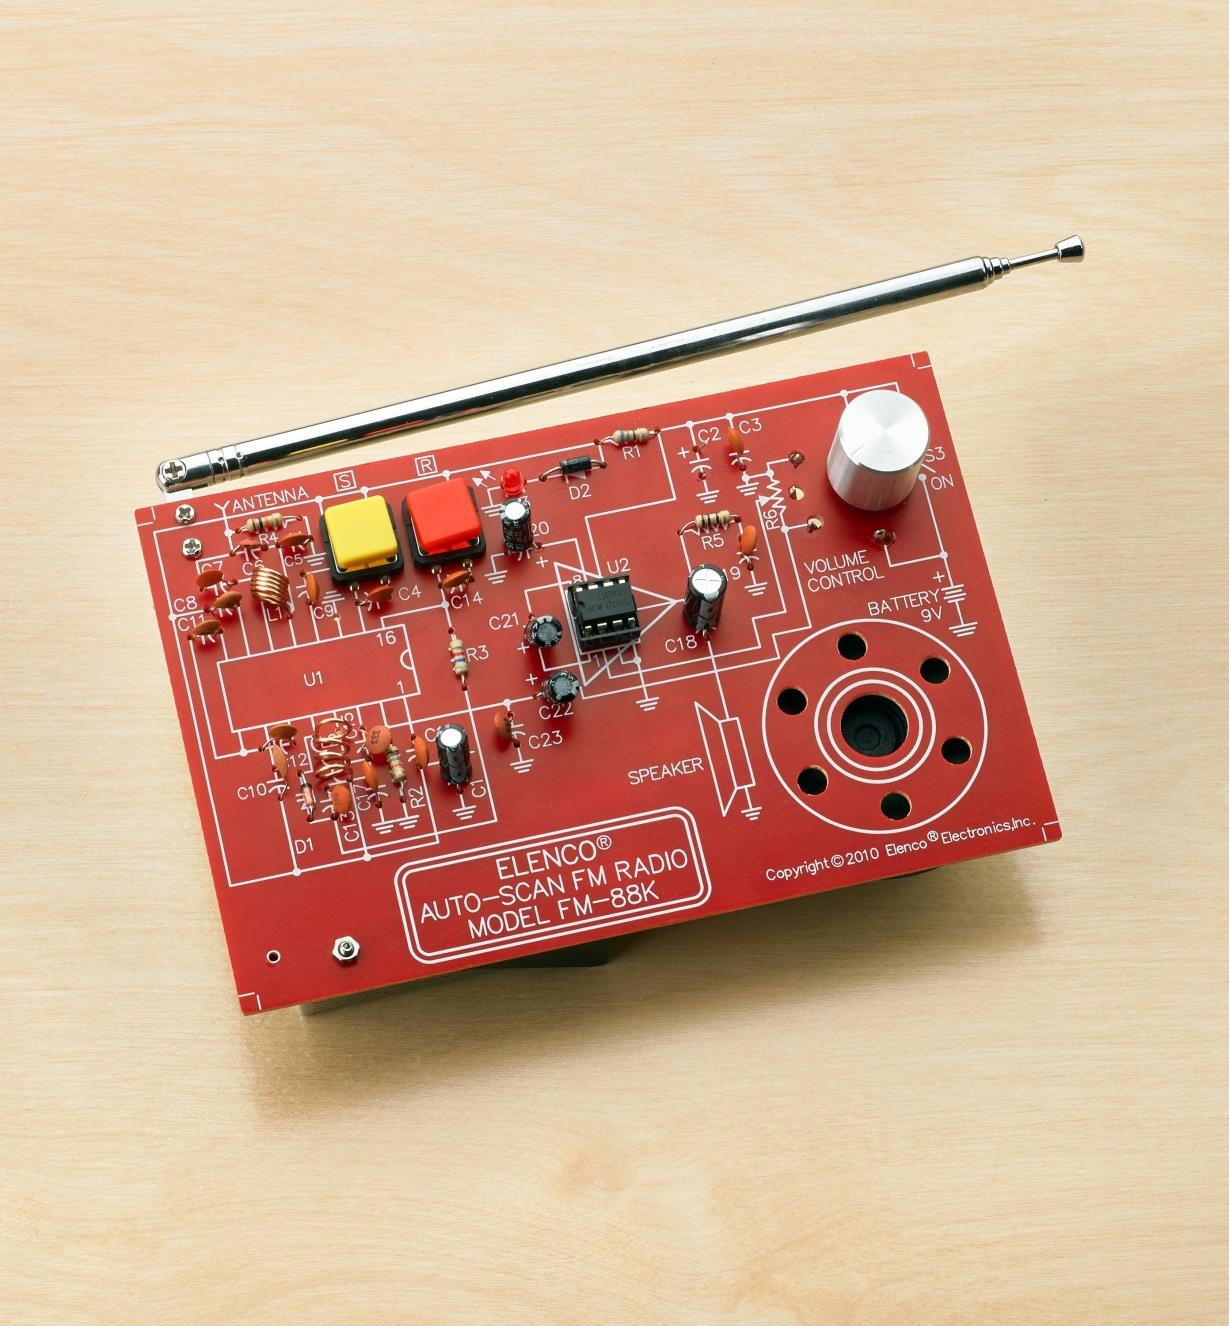 Assembled auto-scan FM radio from the Elenco WEMake FM radio kit